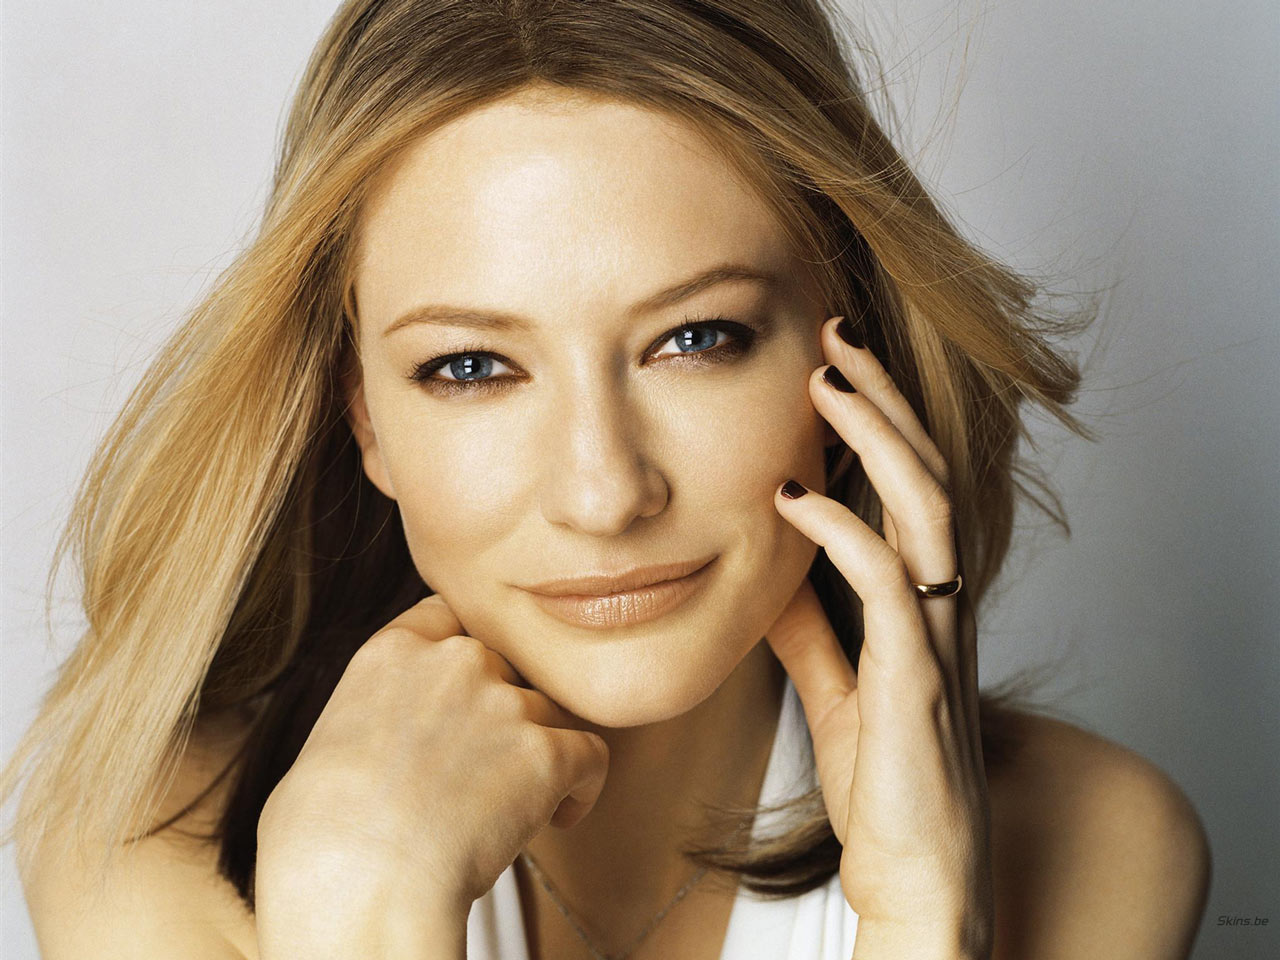 ALL ABOUT HOLLYWOOD STARS: Cate Blanchett Profile and Pics Cate Blanchett